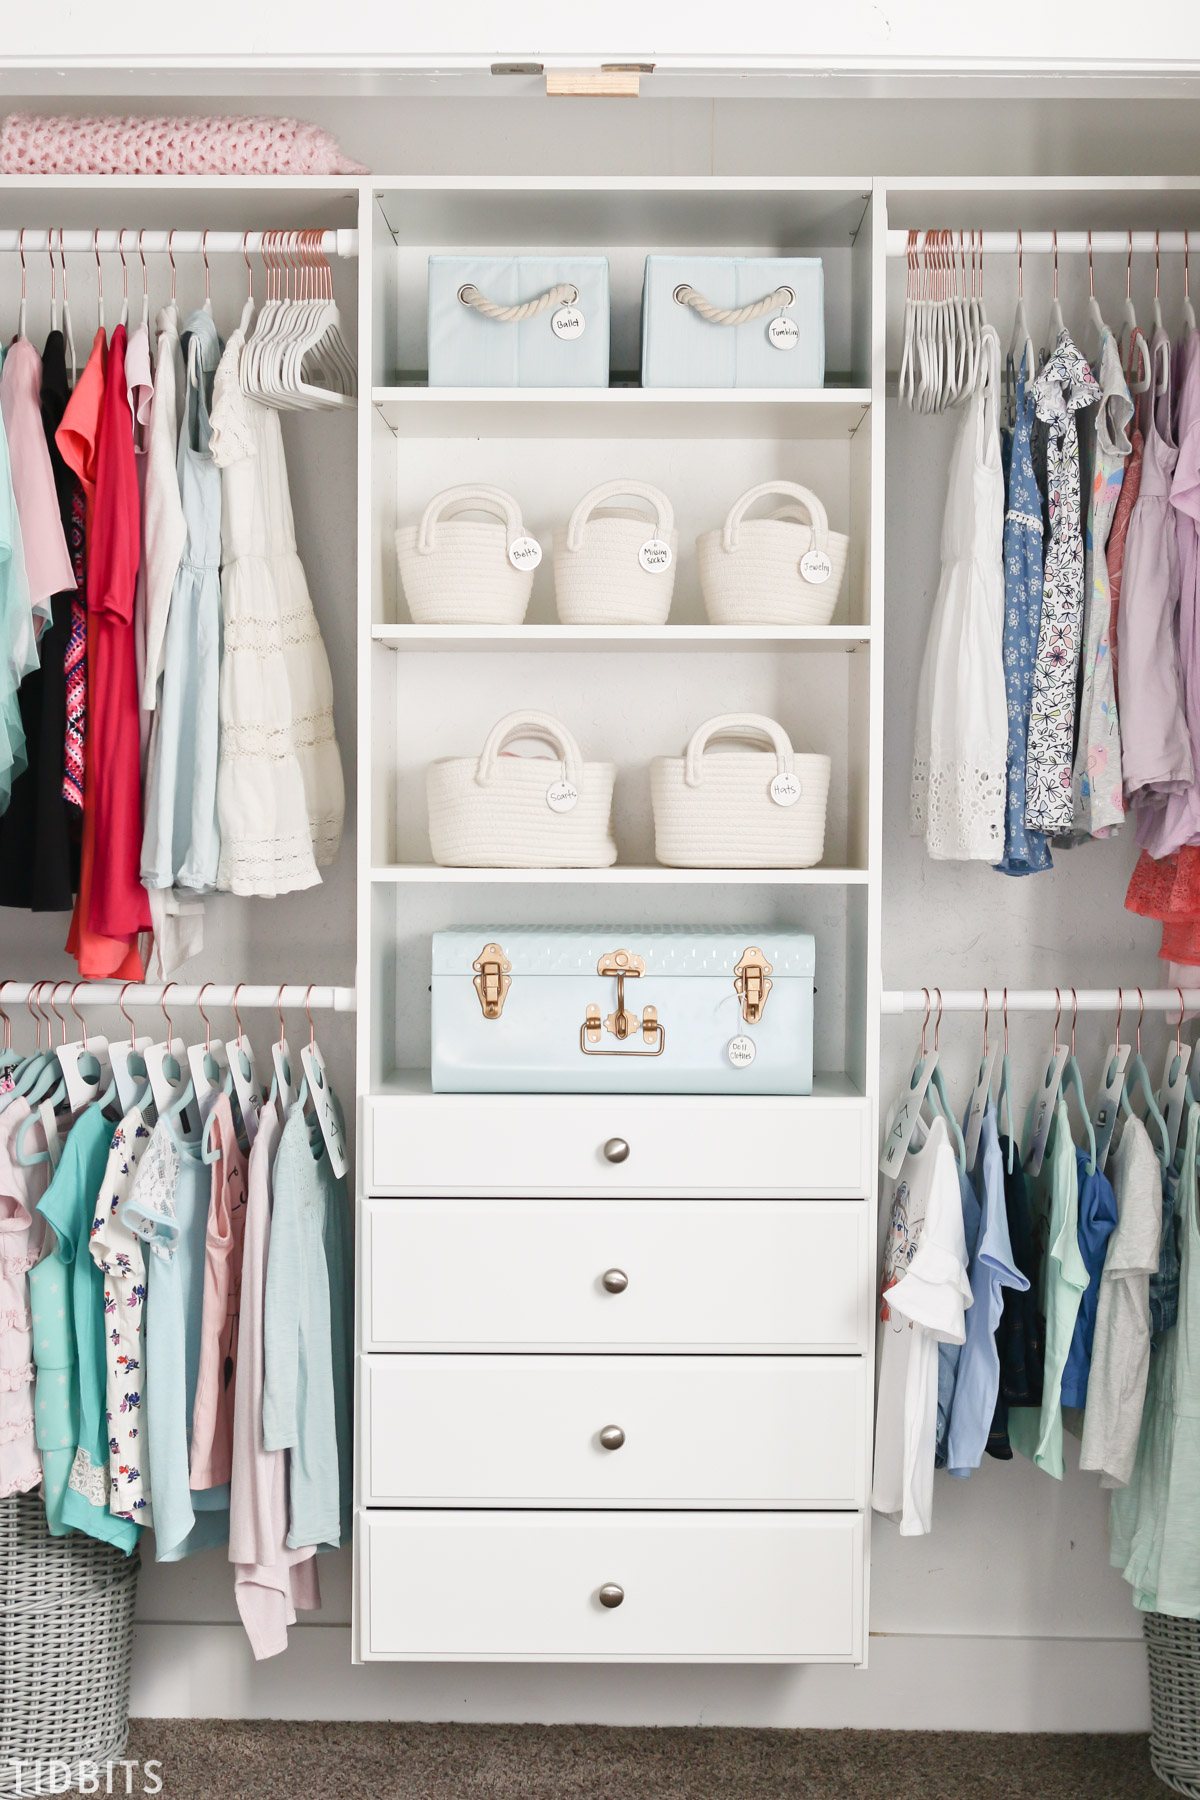 serene youtube kids out with organization trash neat dw over selene tuesday closet diy winsome belinda starr make cheap organizer daily fast easy